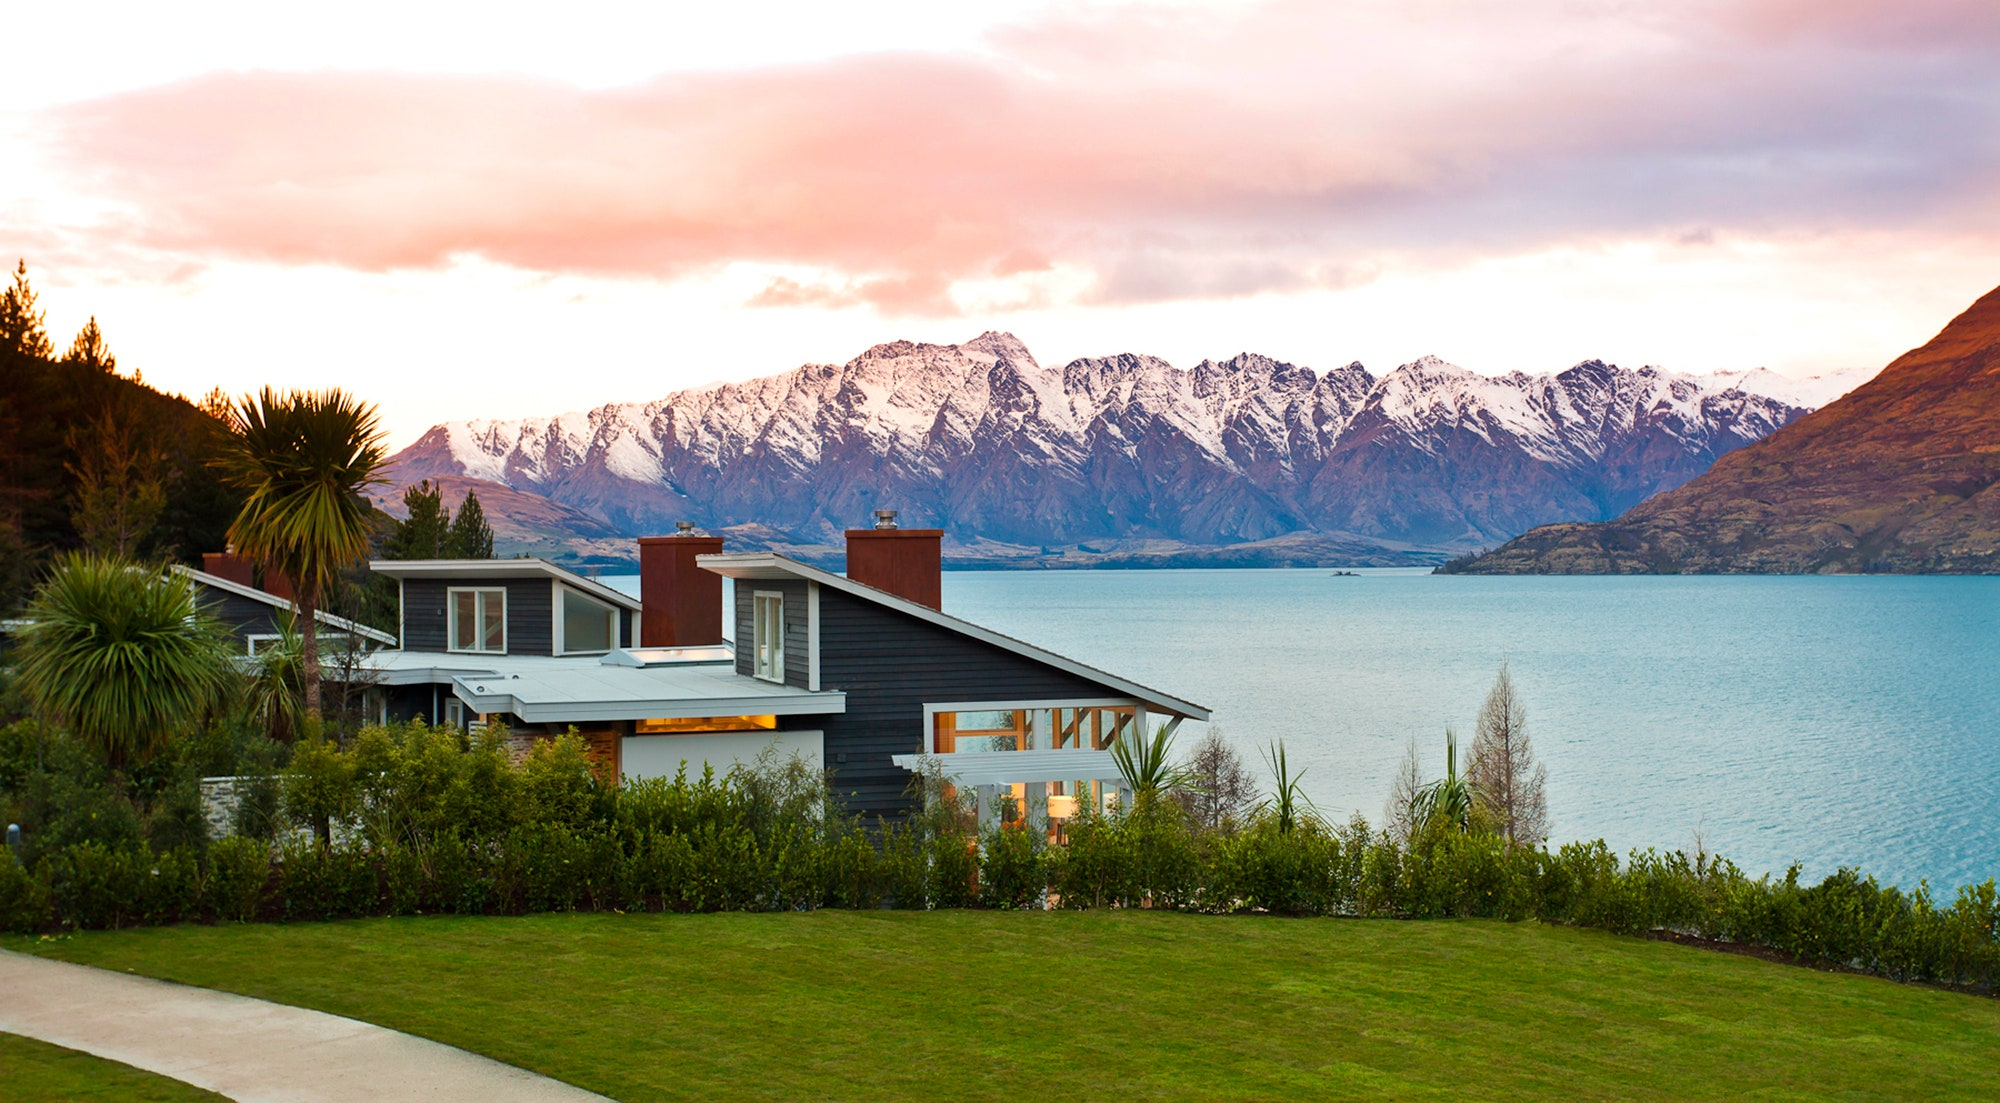 NZ Luxury Accommodation, NZ Luxury Accommodation – Making the Most of Your Holiday